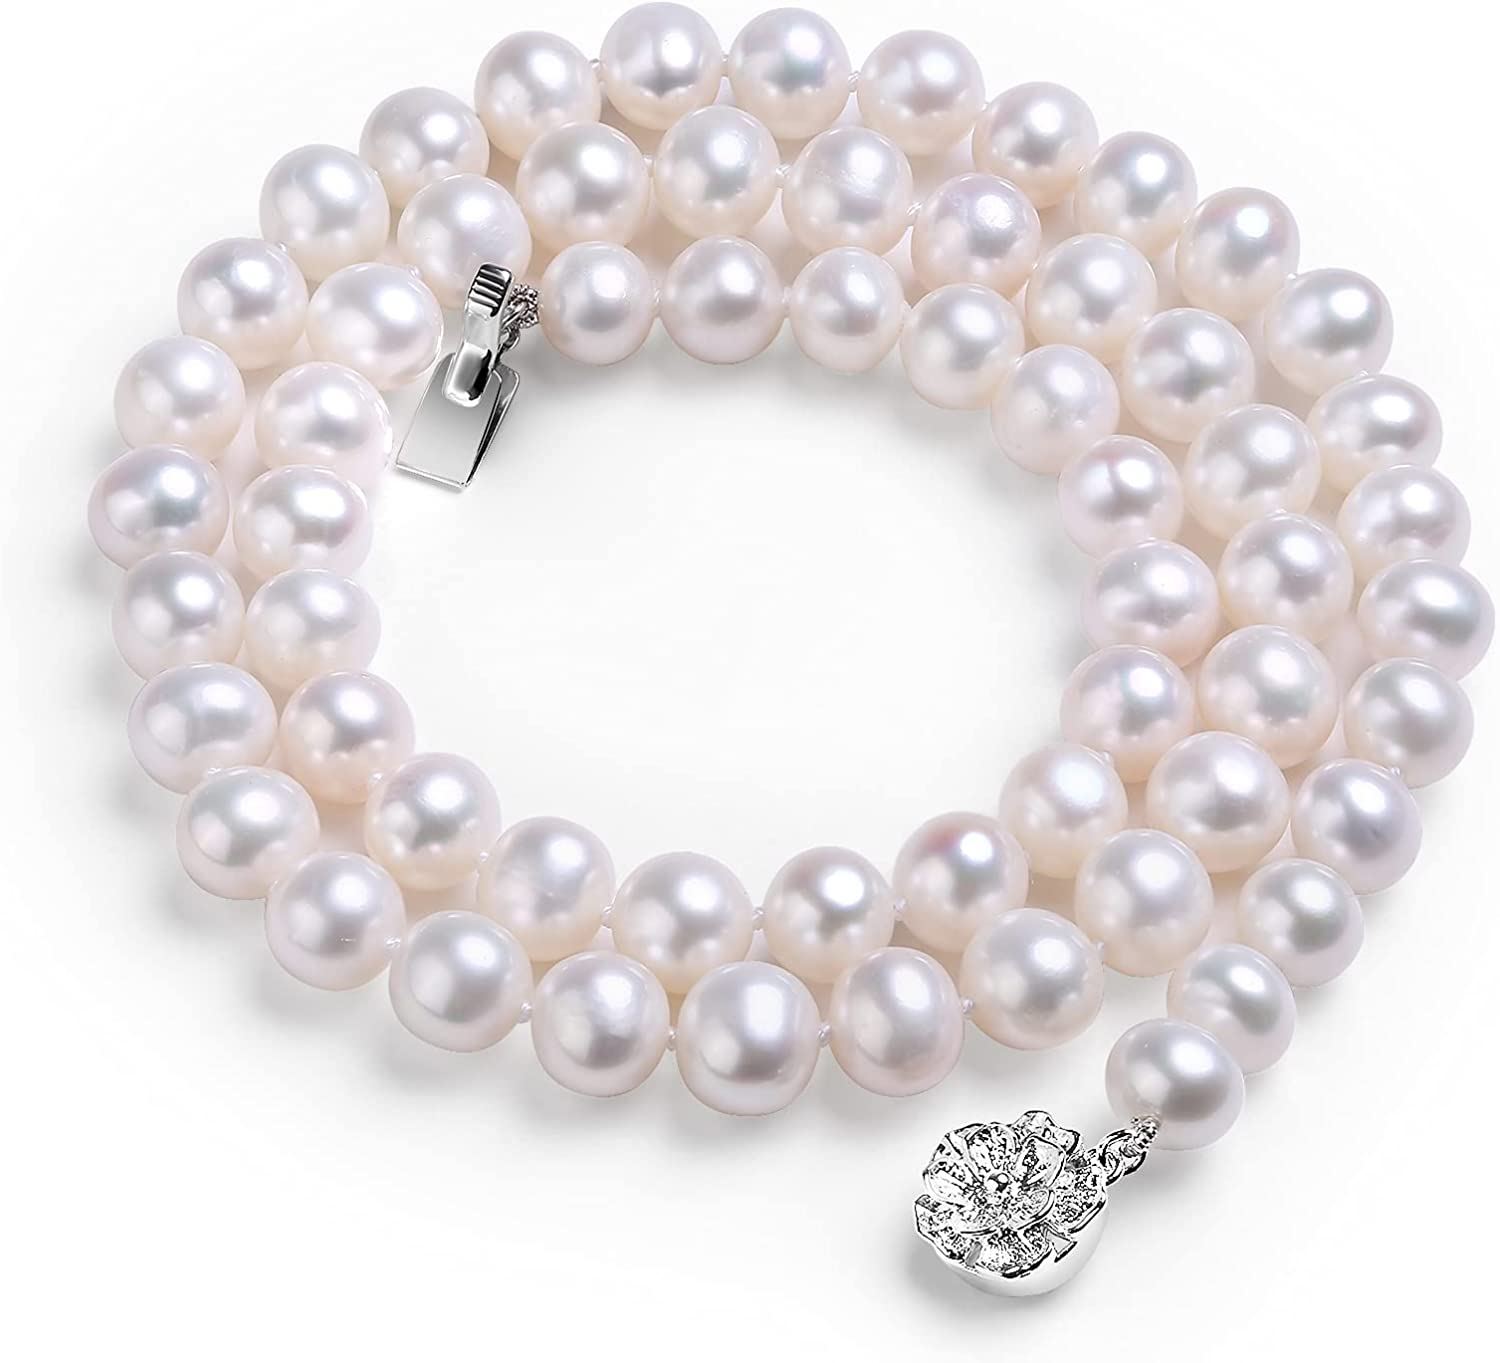 White Don't Recommendation miss the campaign Freshwater Cultured Real Pearls Sterling S Choker Necklace